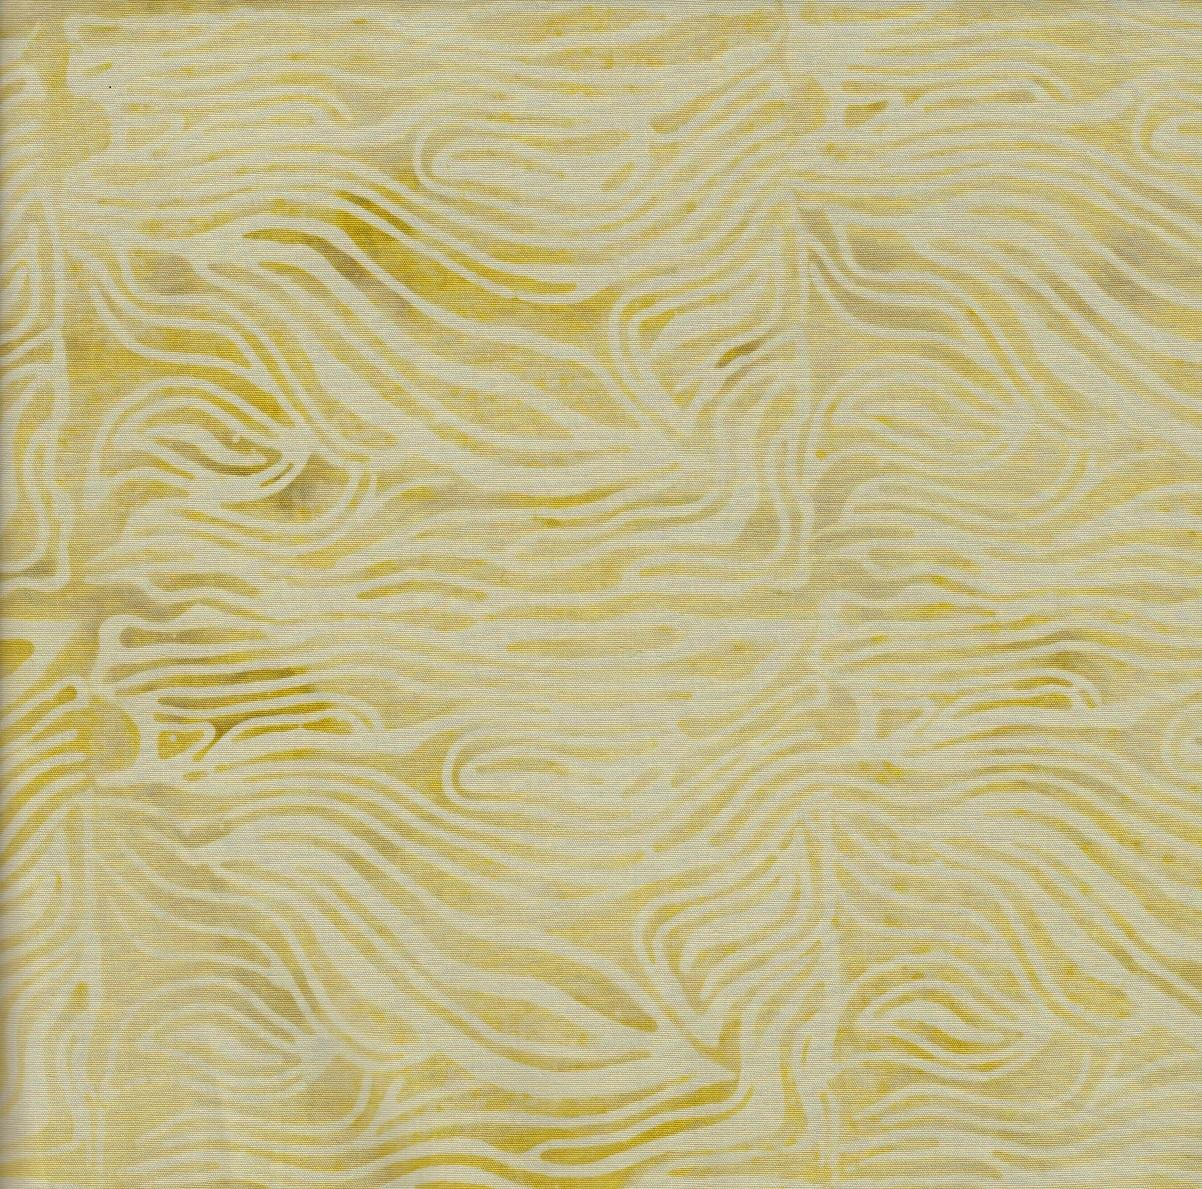 Island Batik - Green - Bark - Tan